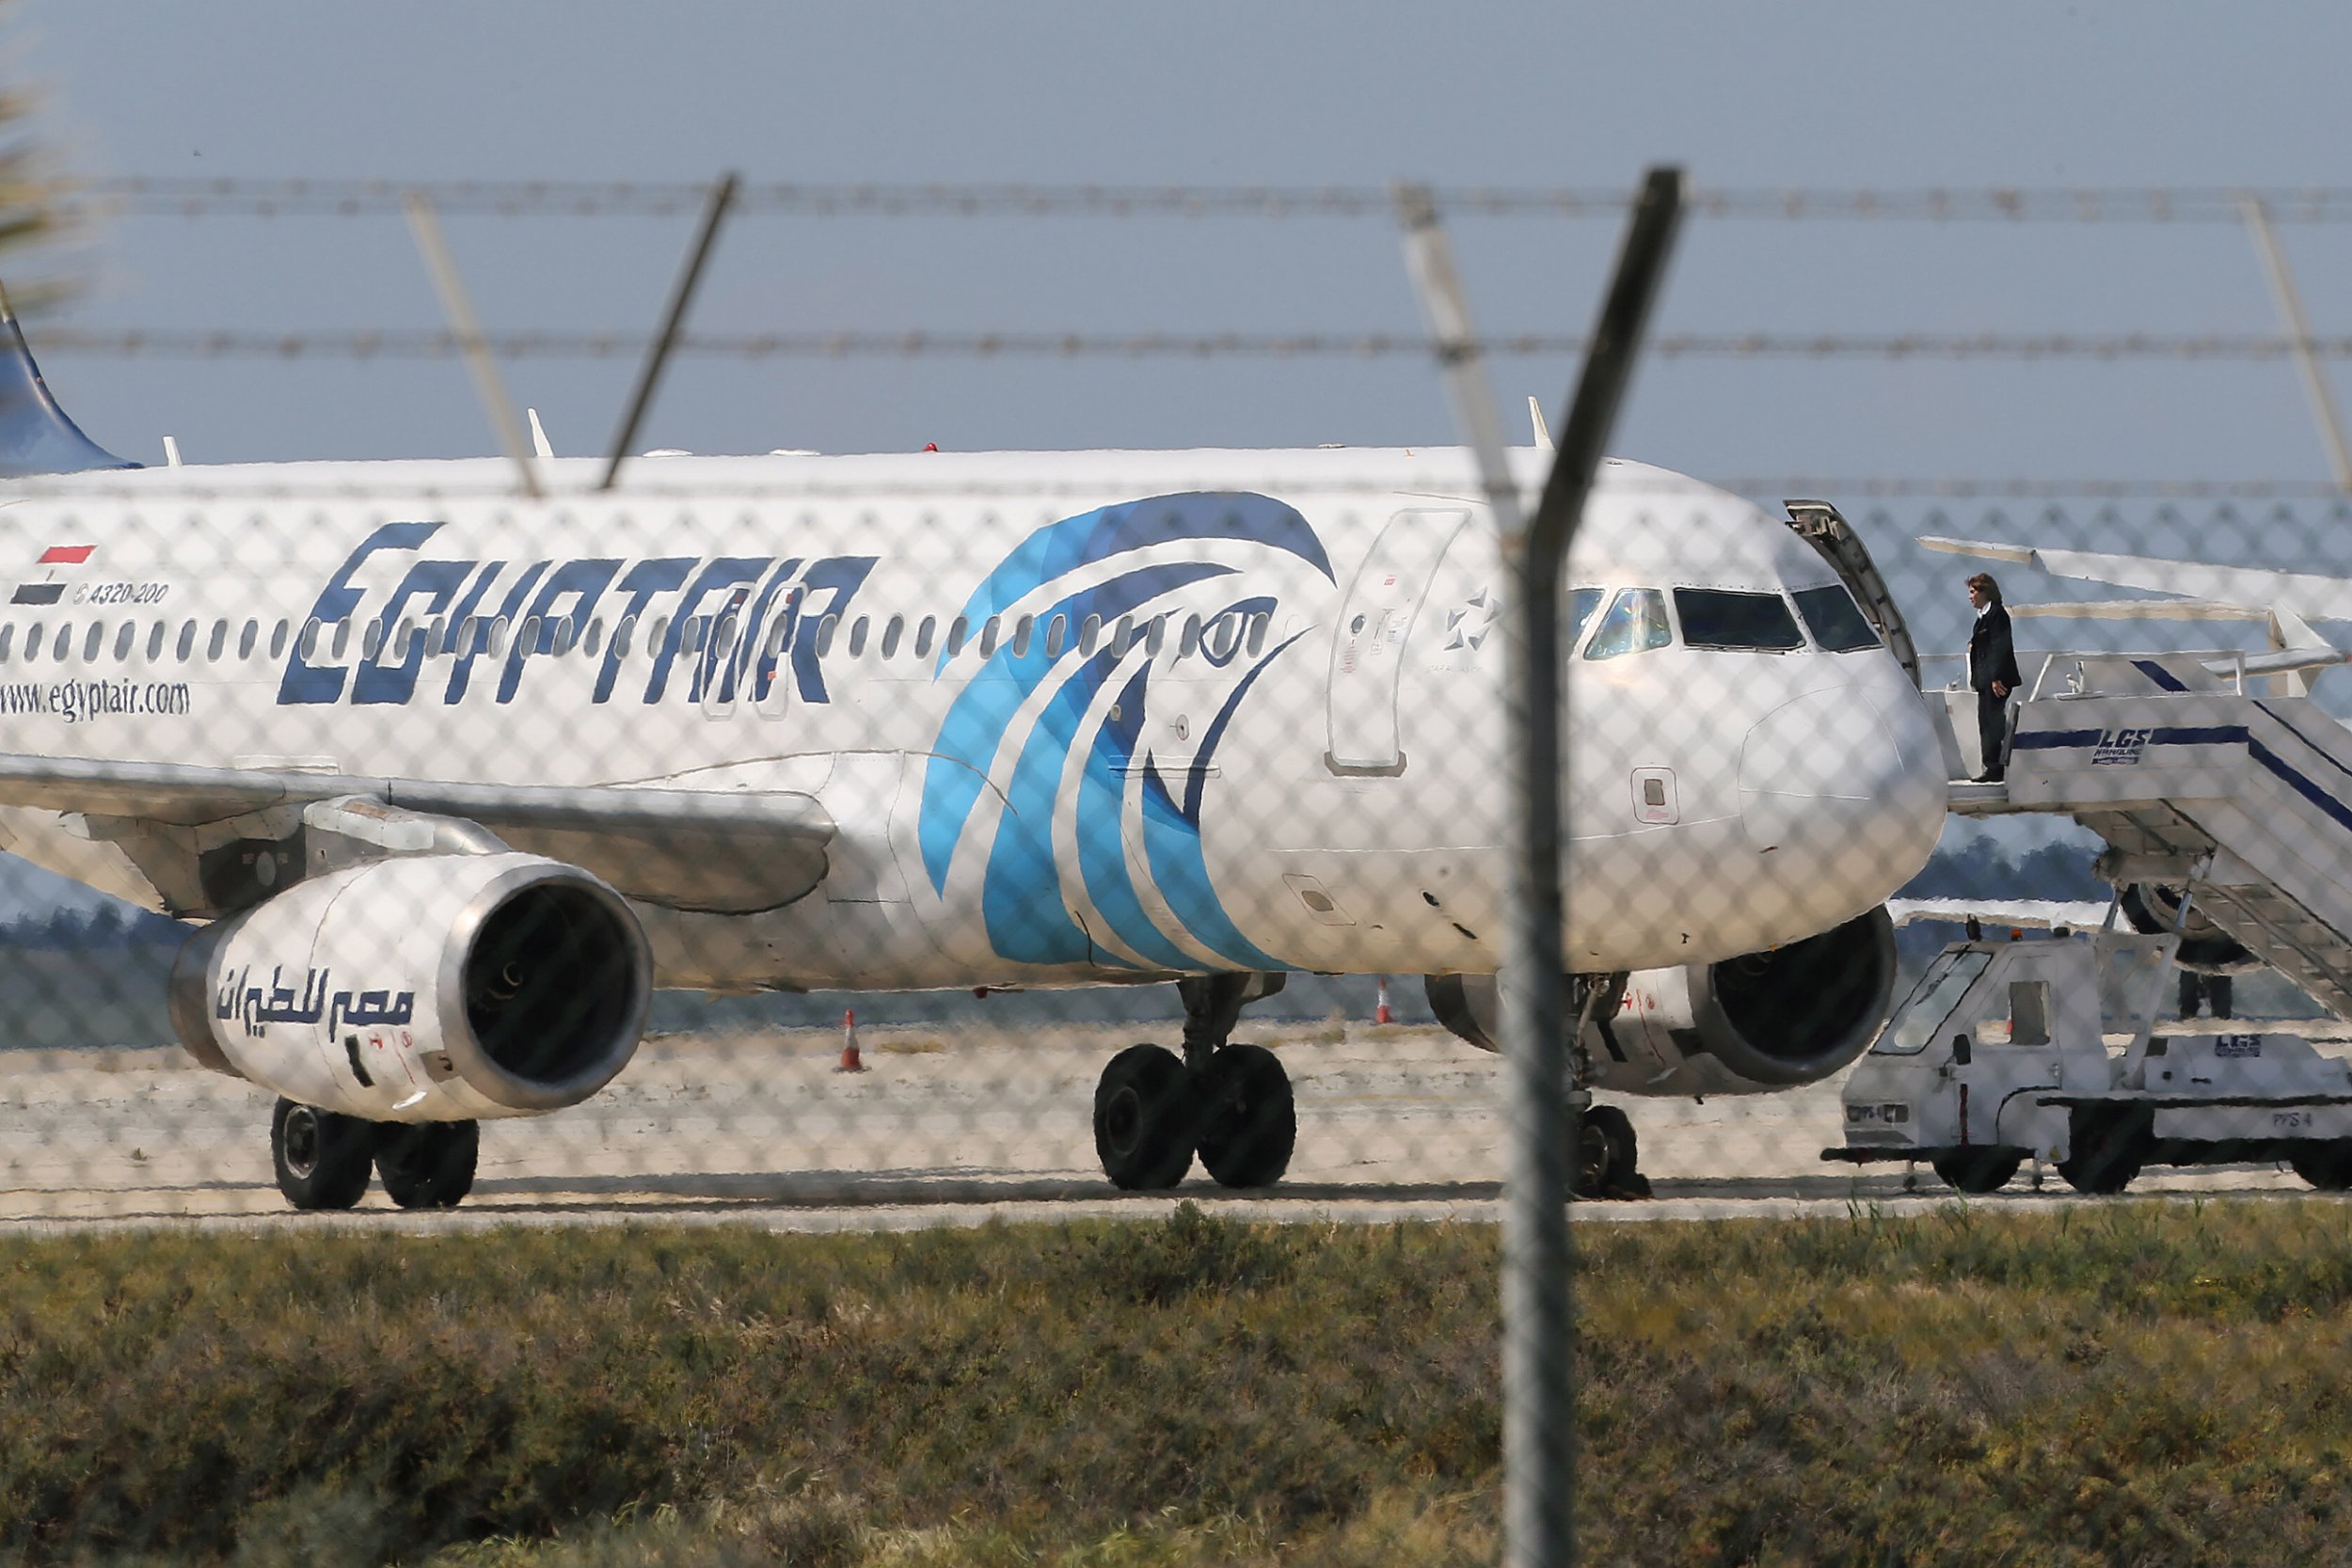 A crew member of the hijacked aircraft of EgyptAir is seen on the passenger steps after landing at Larnaca airport Tuesday, March 29, 2016. The EgyptAir plane was hijacked on Tuesday while flying from the Egyptian Mediterranean coastal city of Alexandria to the capital, Cairo, and later landed in Cyprus where some of the women and children were allowed to get off the aircraft, according to Egyptian and Cypriot officials. (AP Photo/Petros Karadjias)